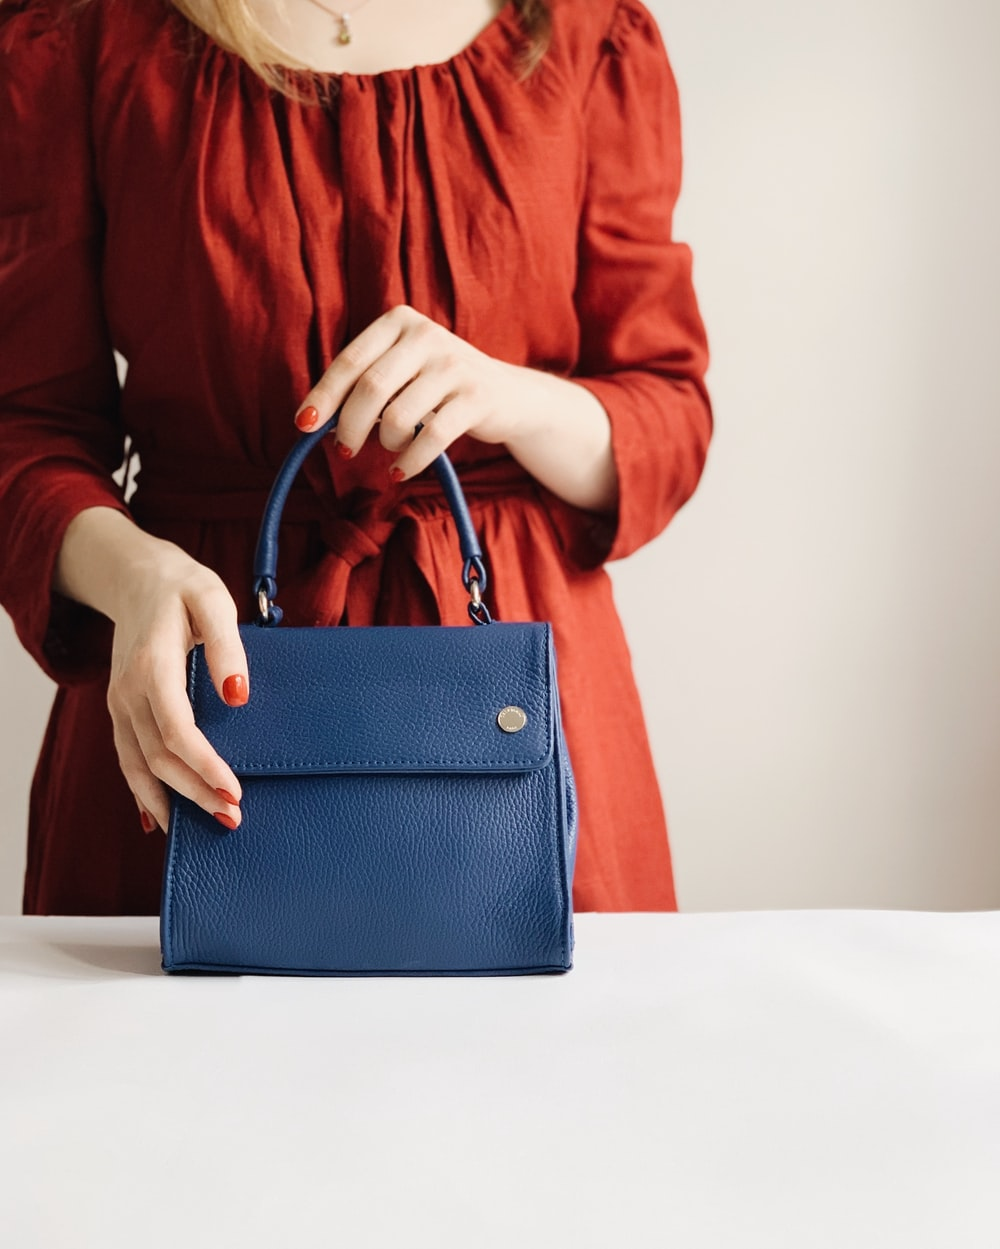 woman holding blue leather handbag